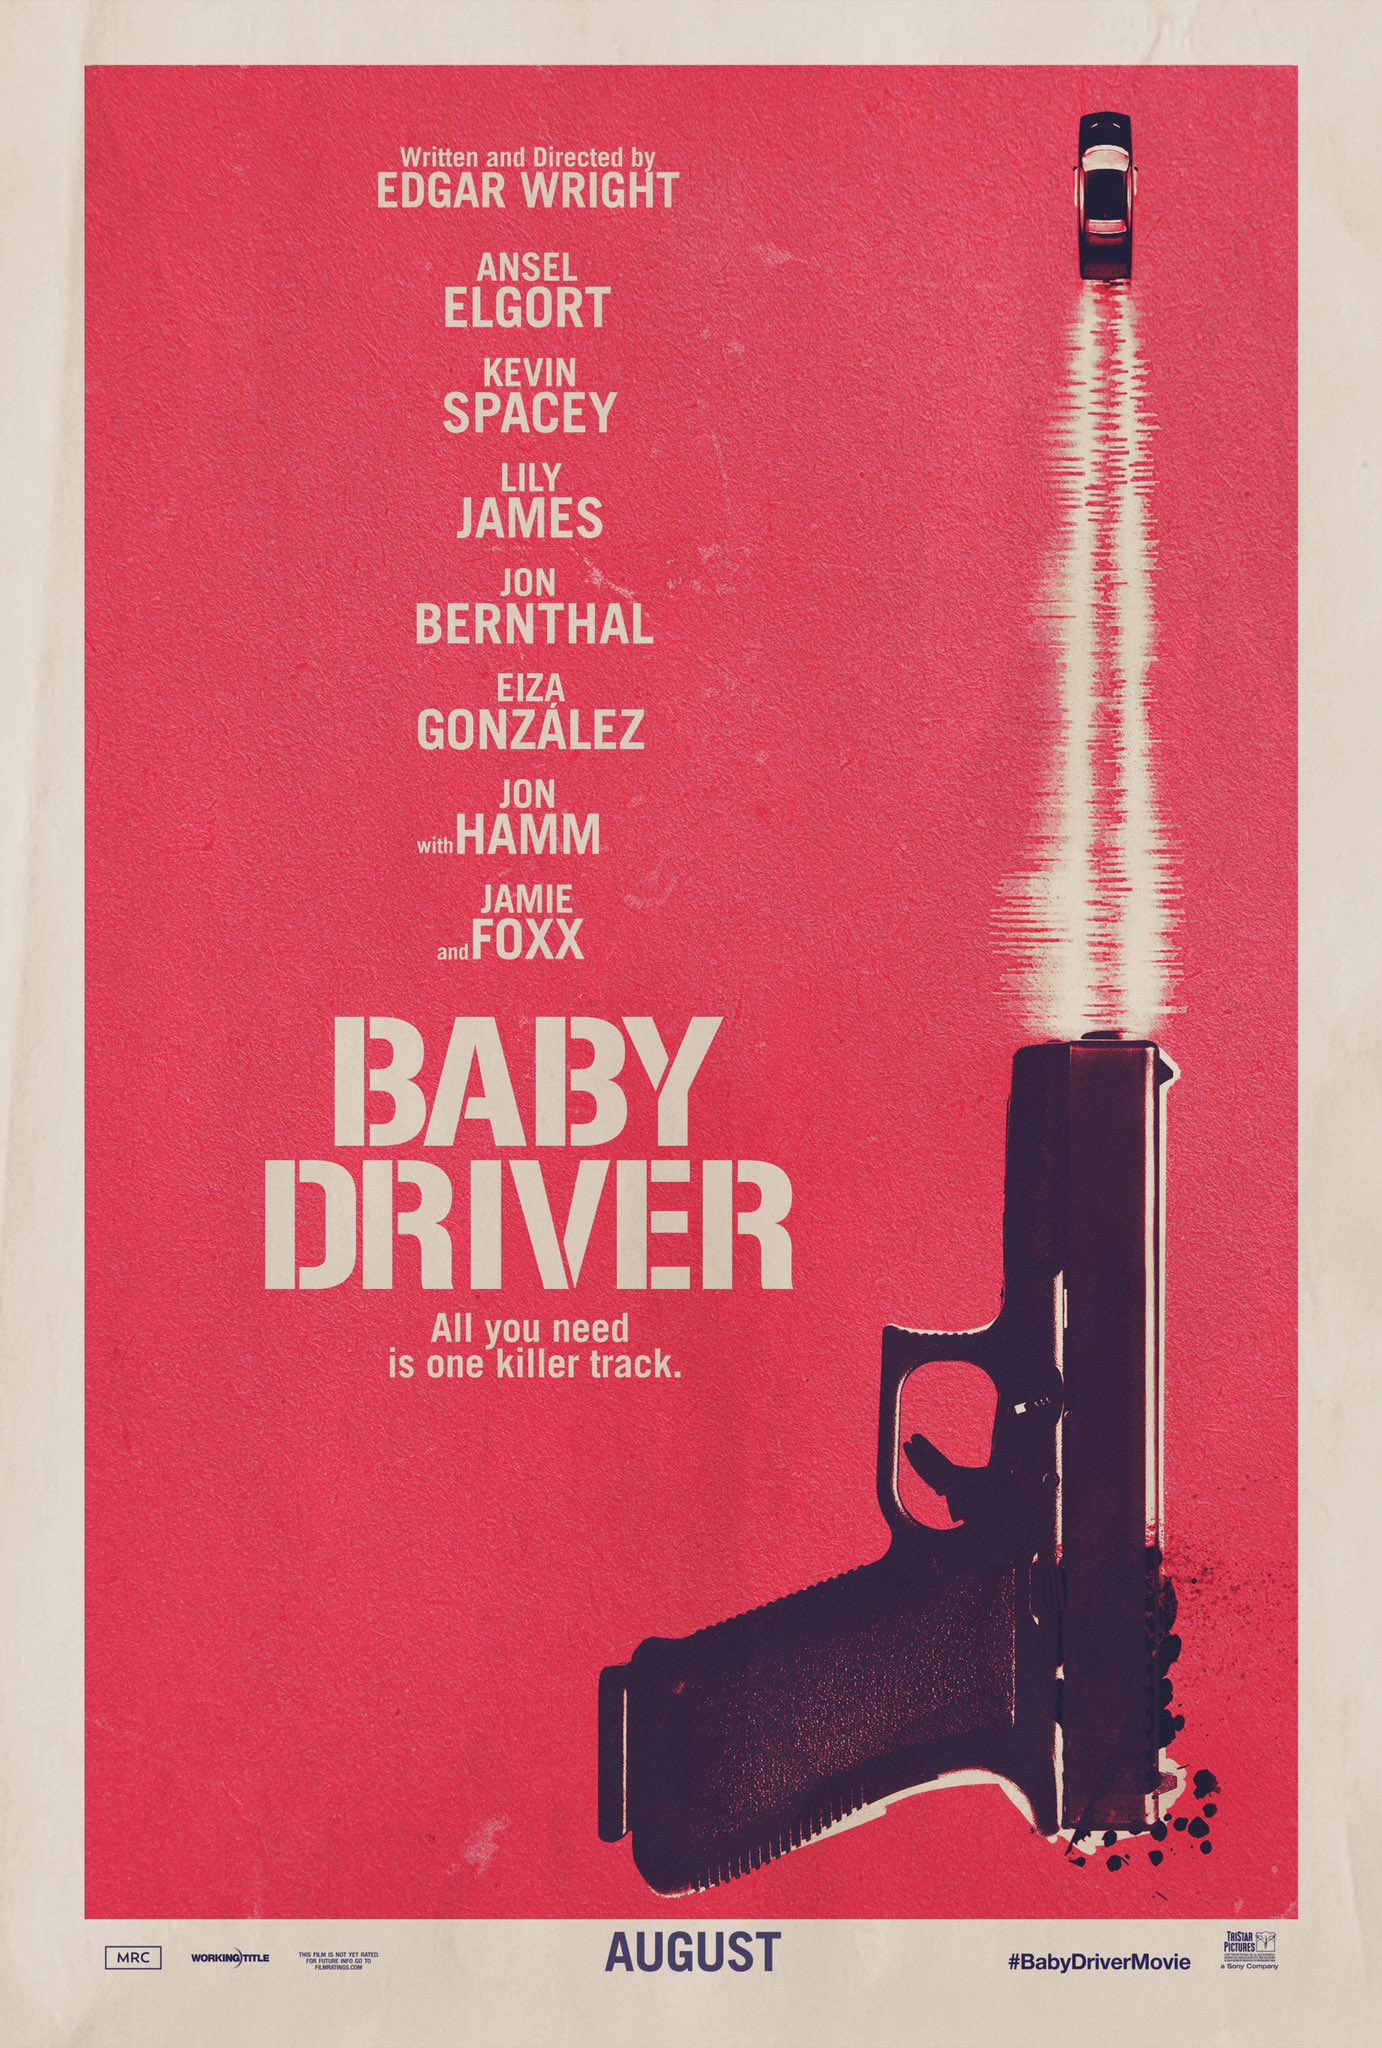 BABY DRIVER POSTER2.jpeg